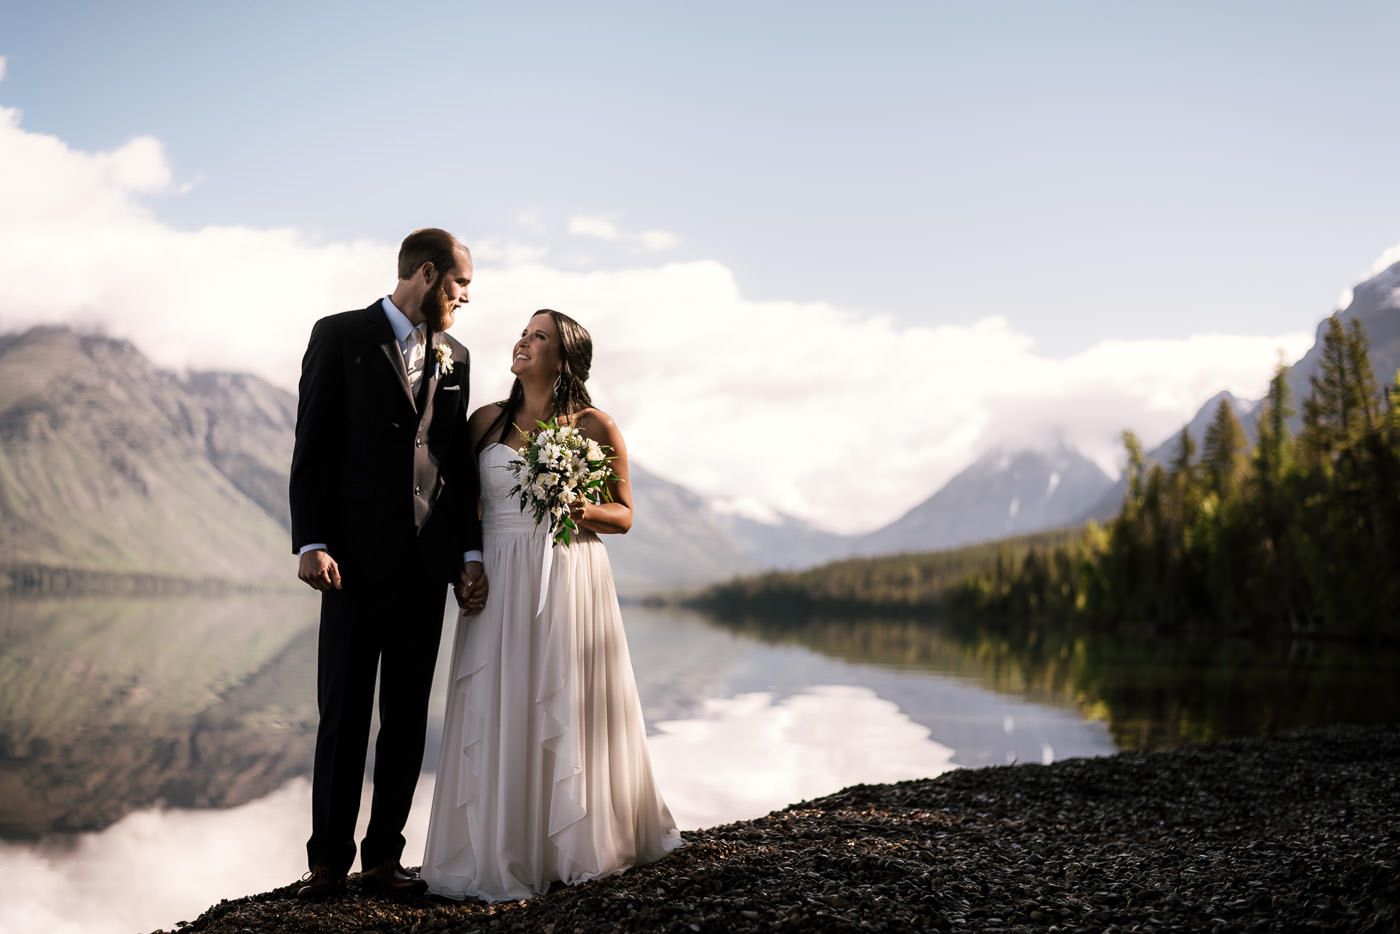 Loving newly married couple stands side by side for a romantic portrait in Montana.